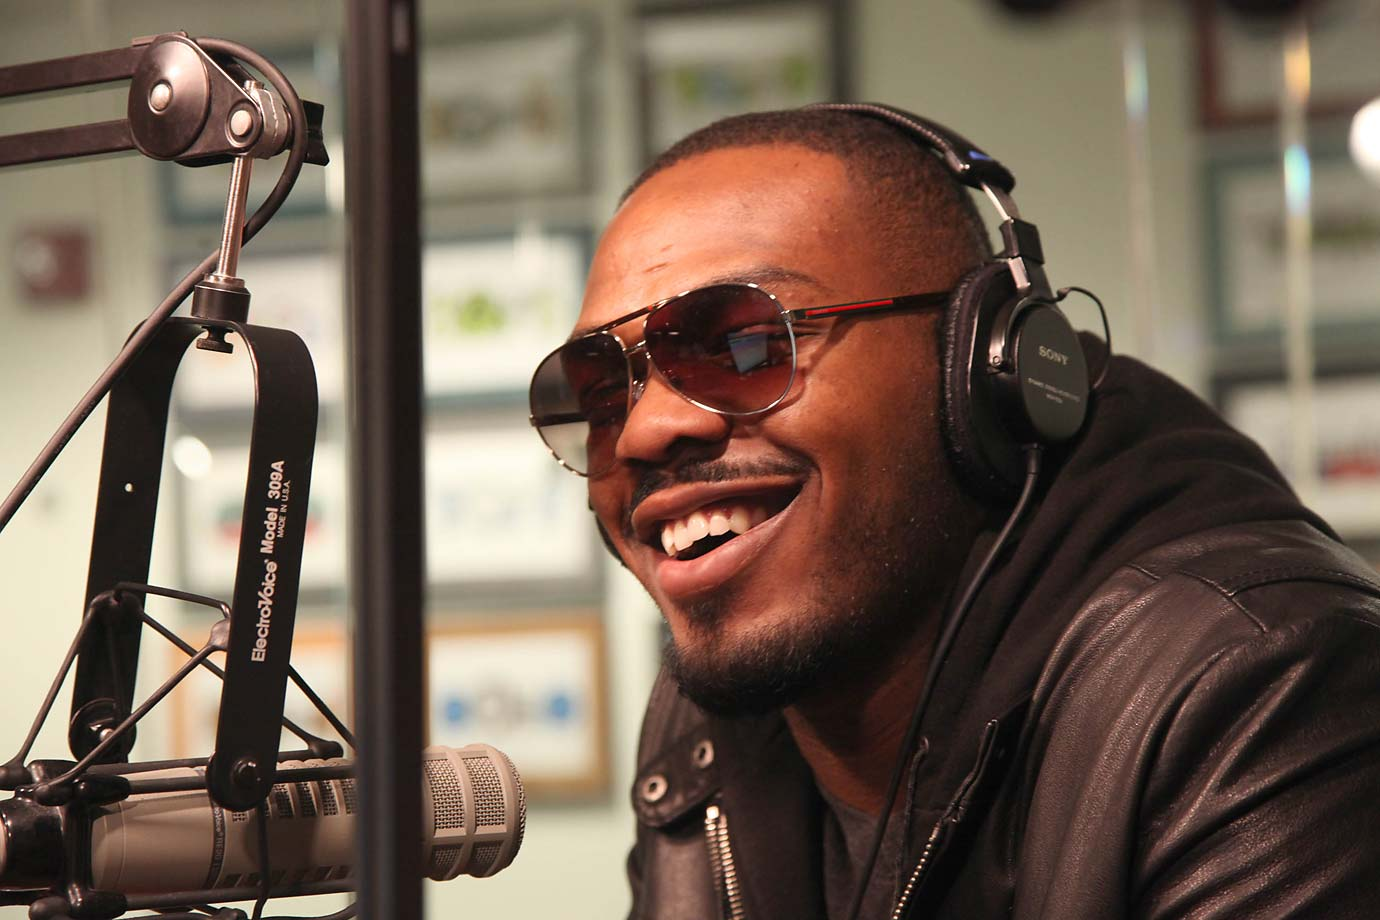 Jon Jones visited The Whoolywood Shuffle at SiriusXM Studio on December 21 2011 in New York City.